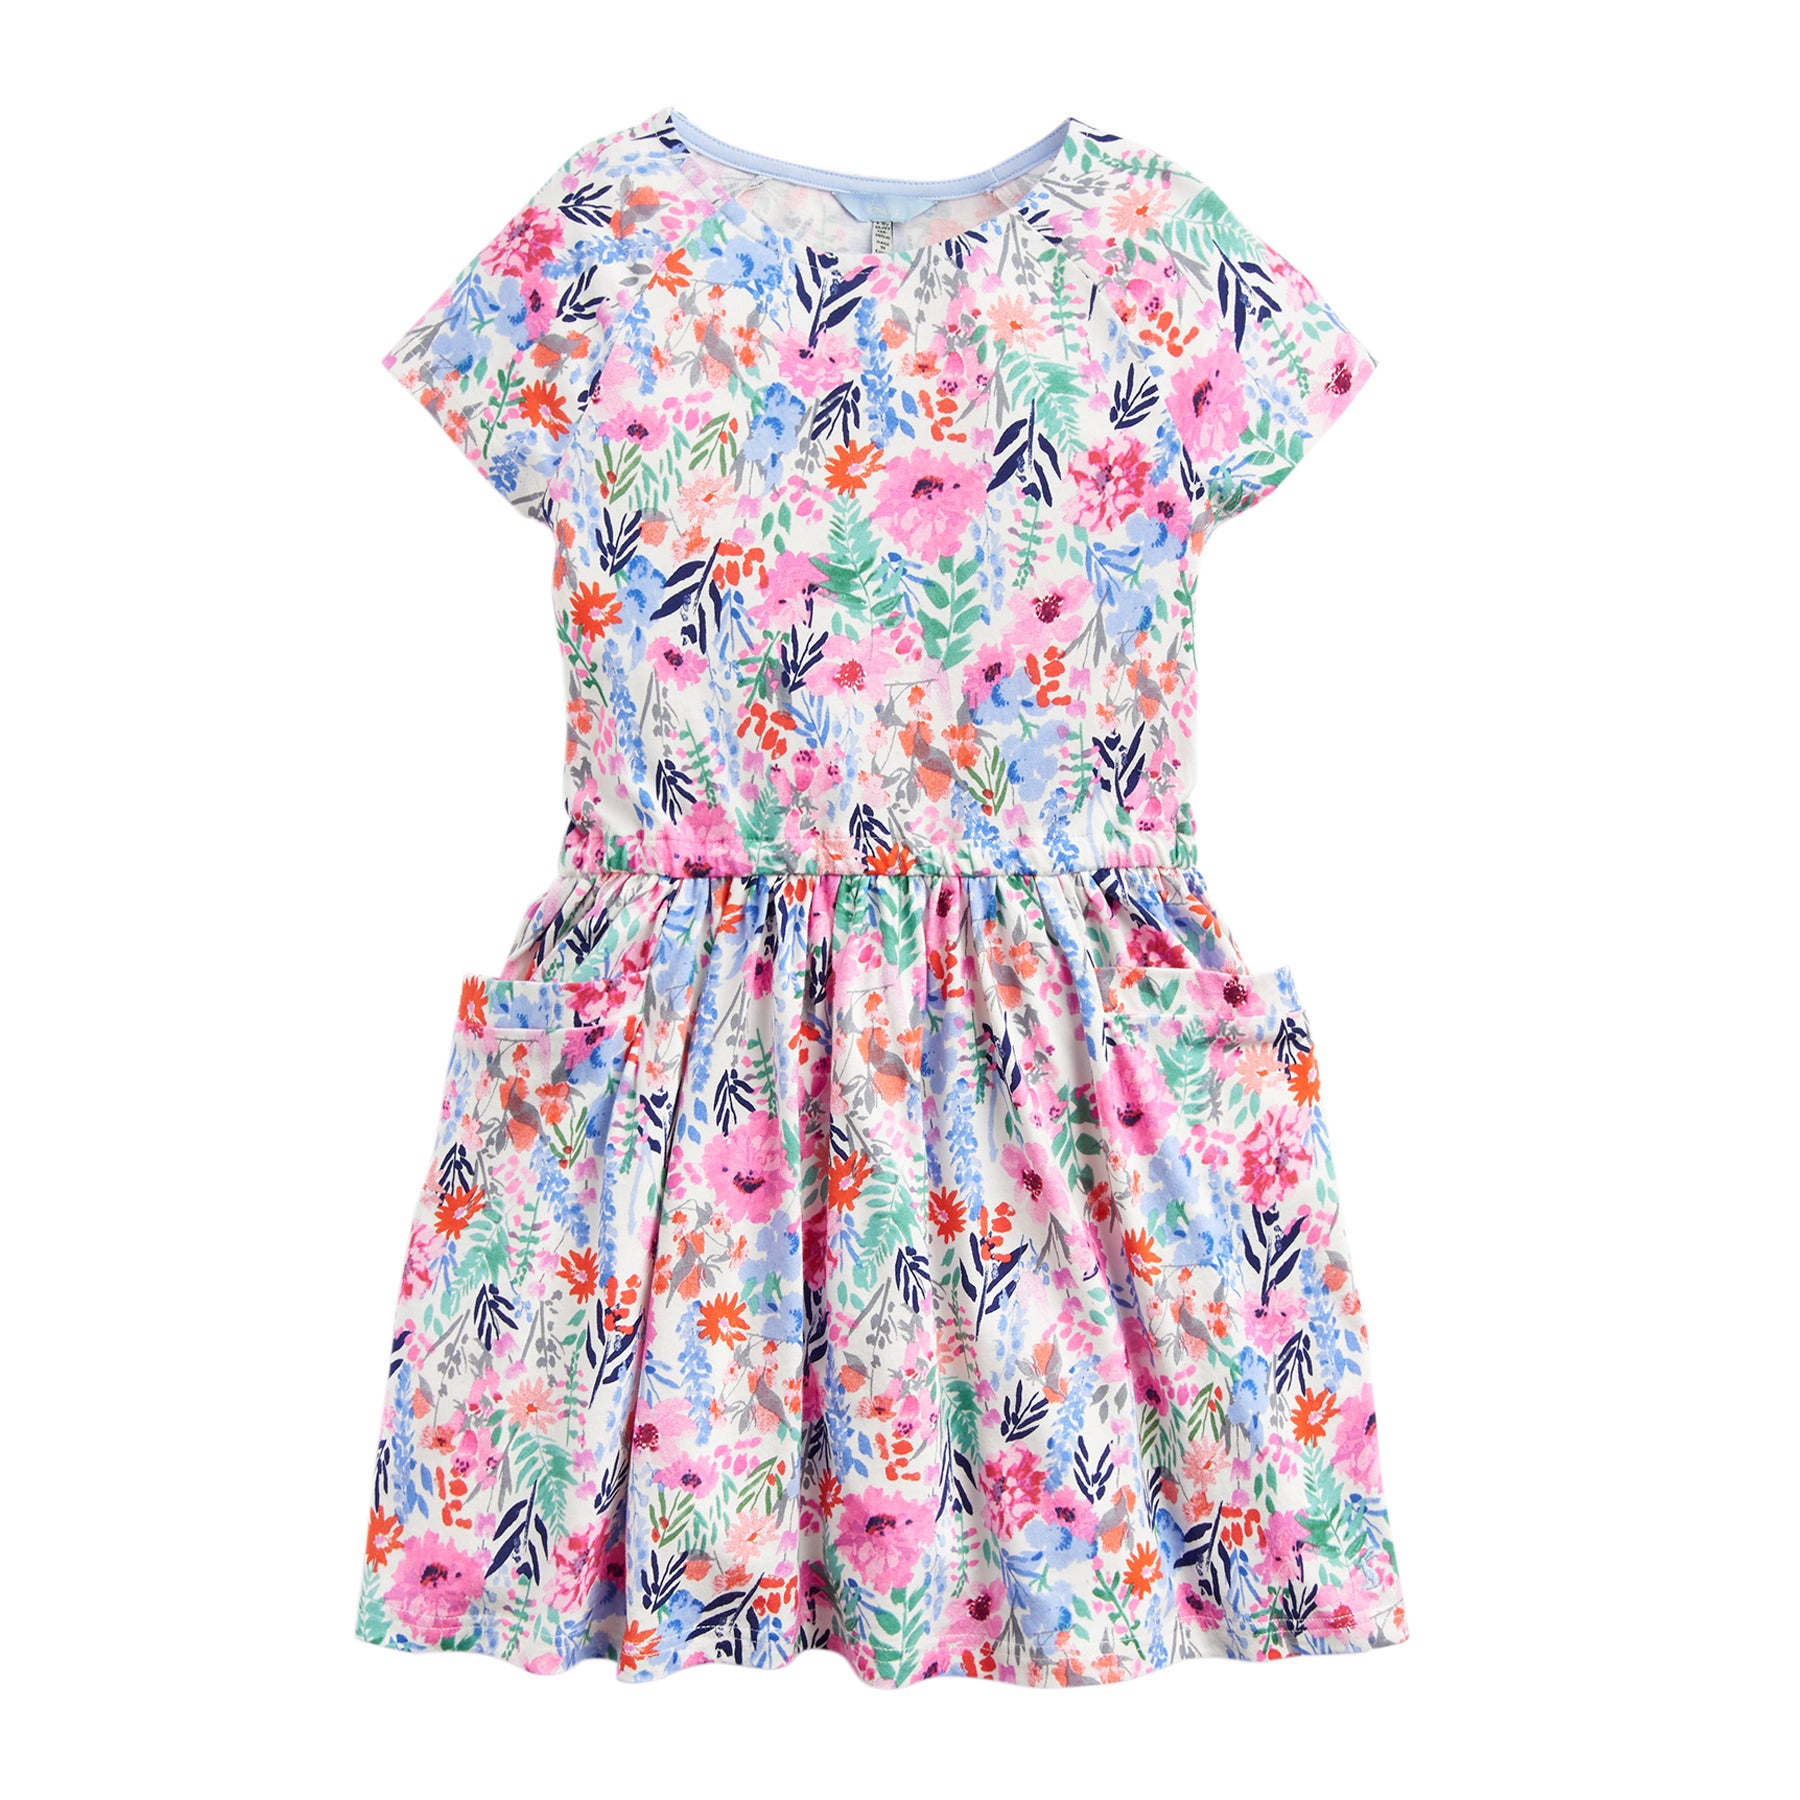 Joules Jude Dress - Cream Multi Floral